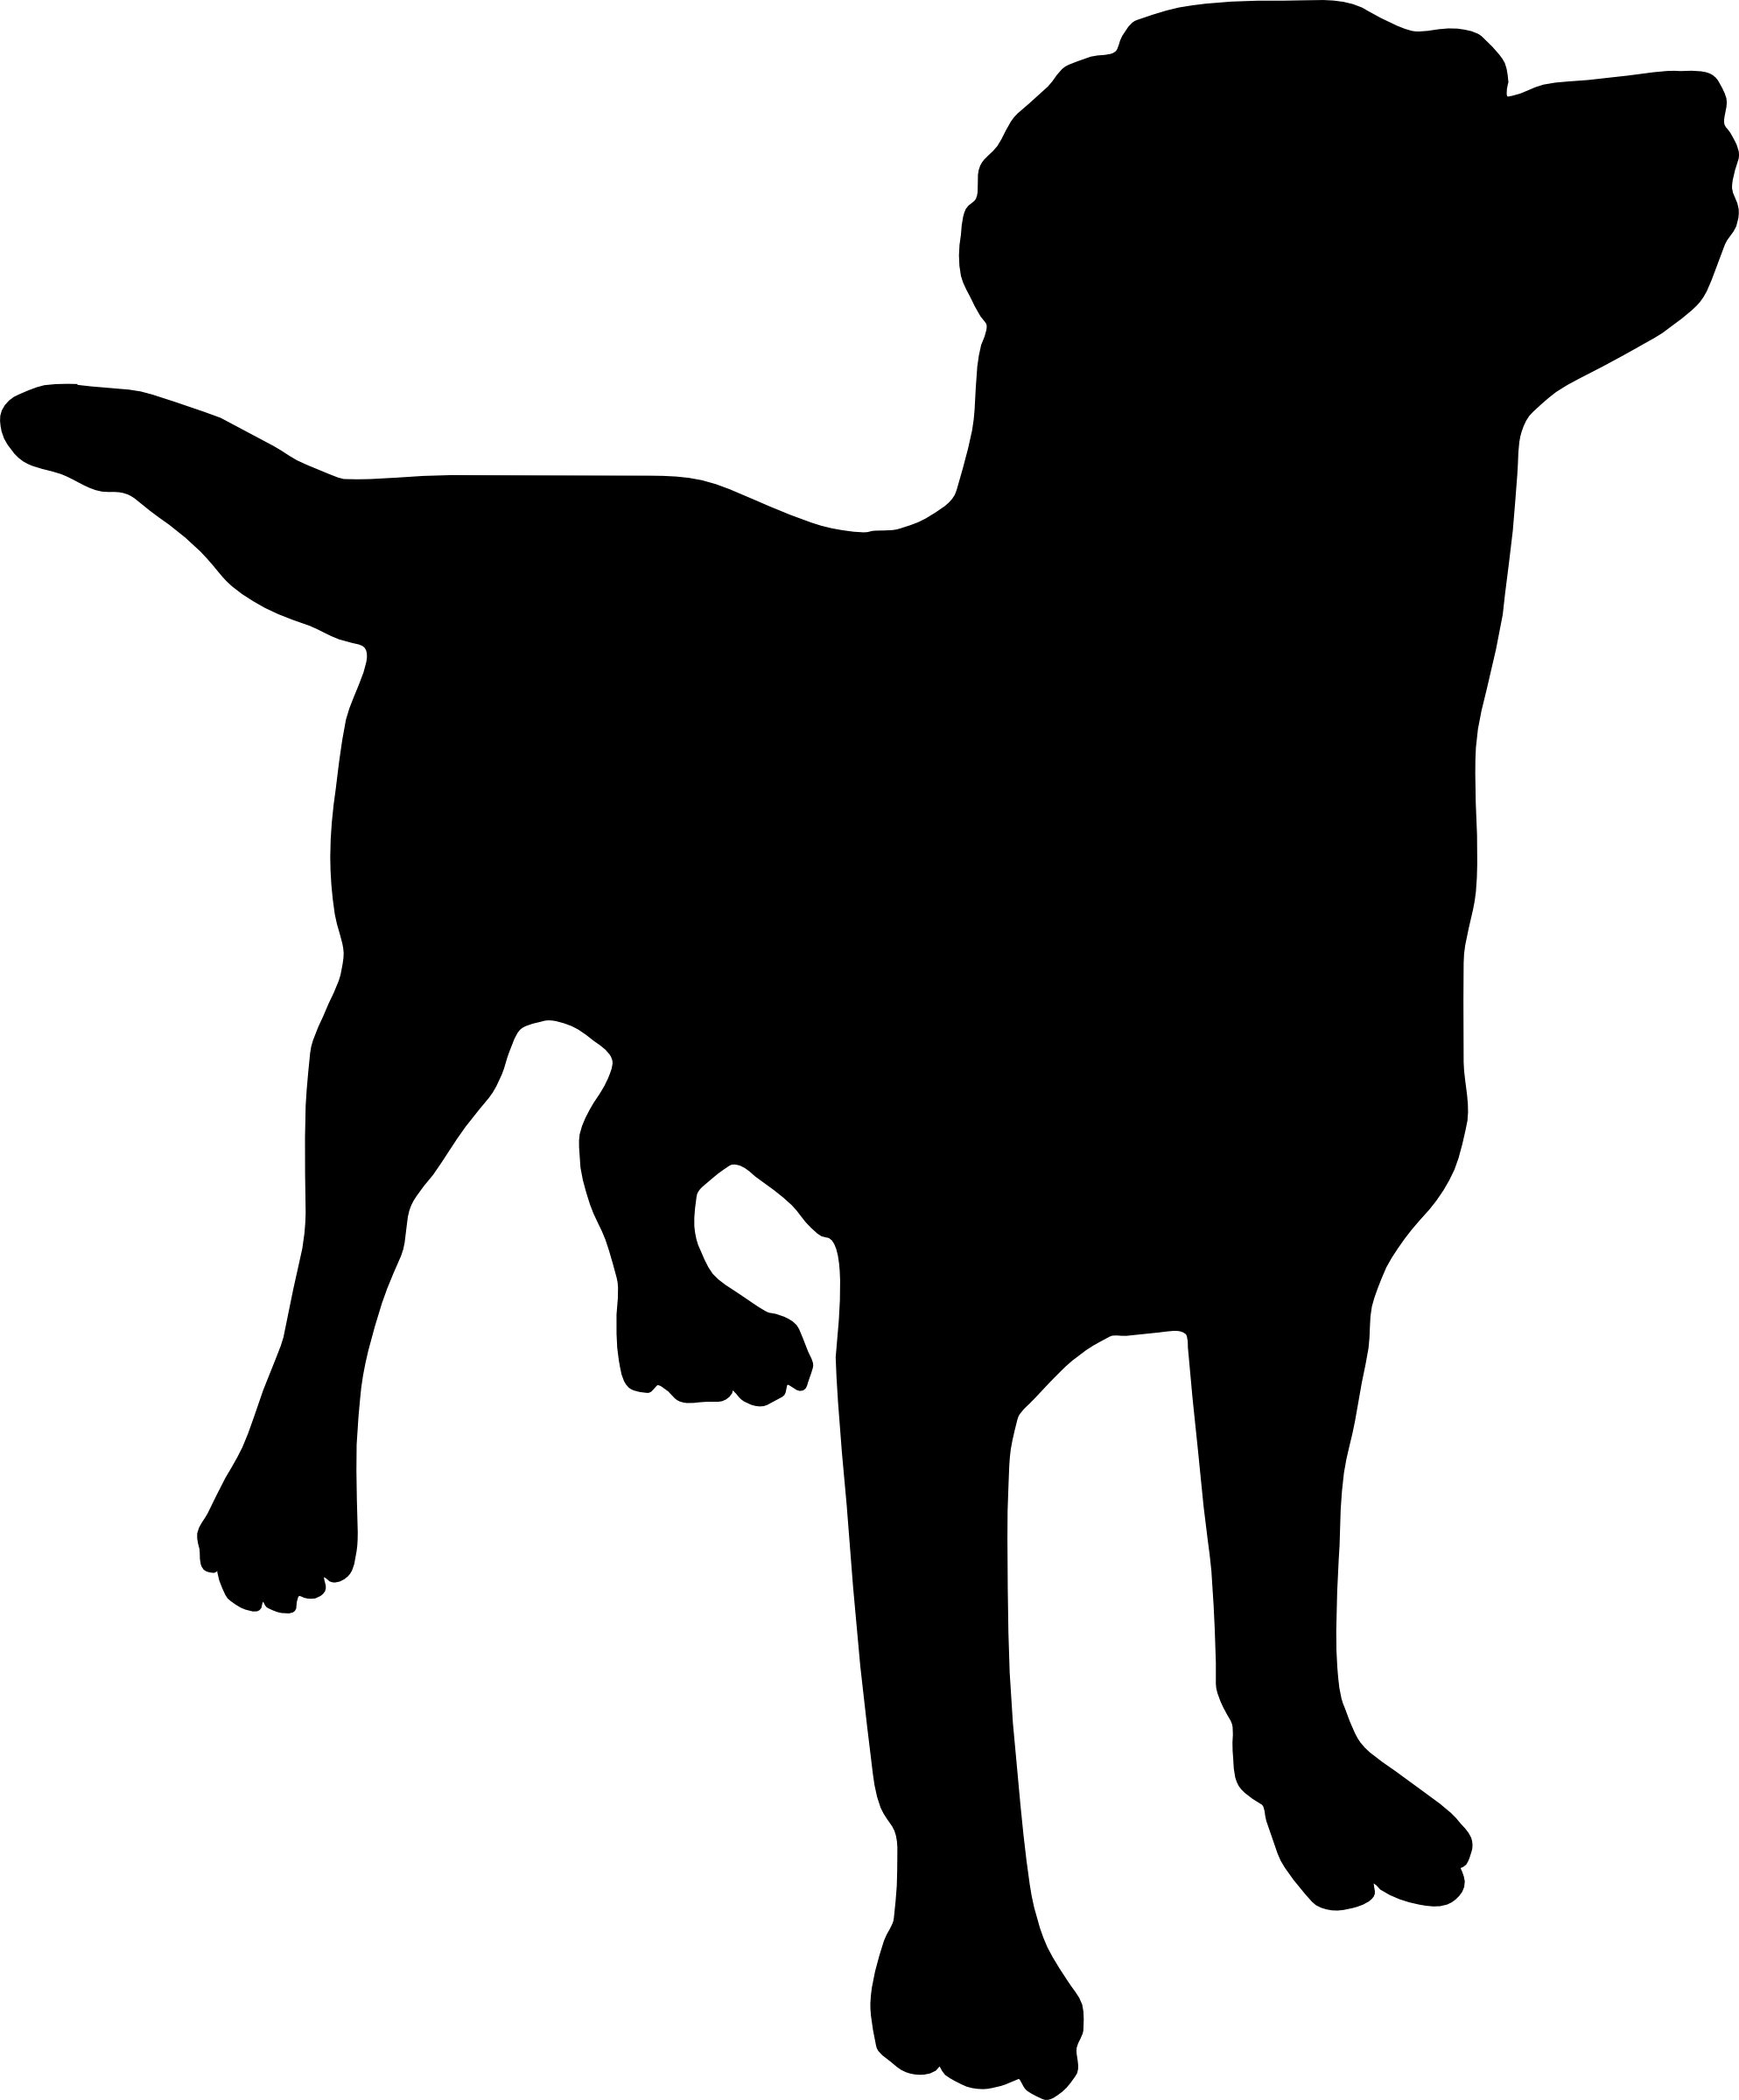 Png dog clipart svg free download Dog Cat Silhouette at GetDrawings.com | Free for personal use Dog ... svg free download